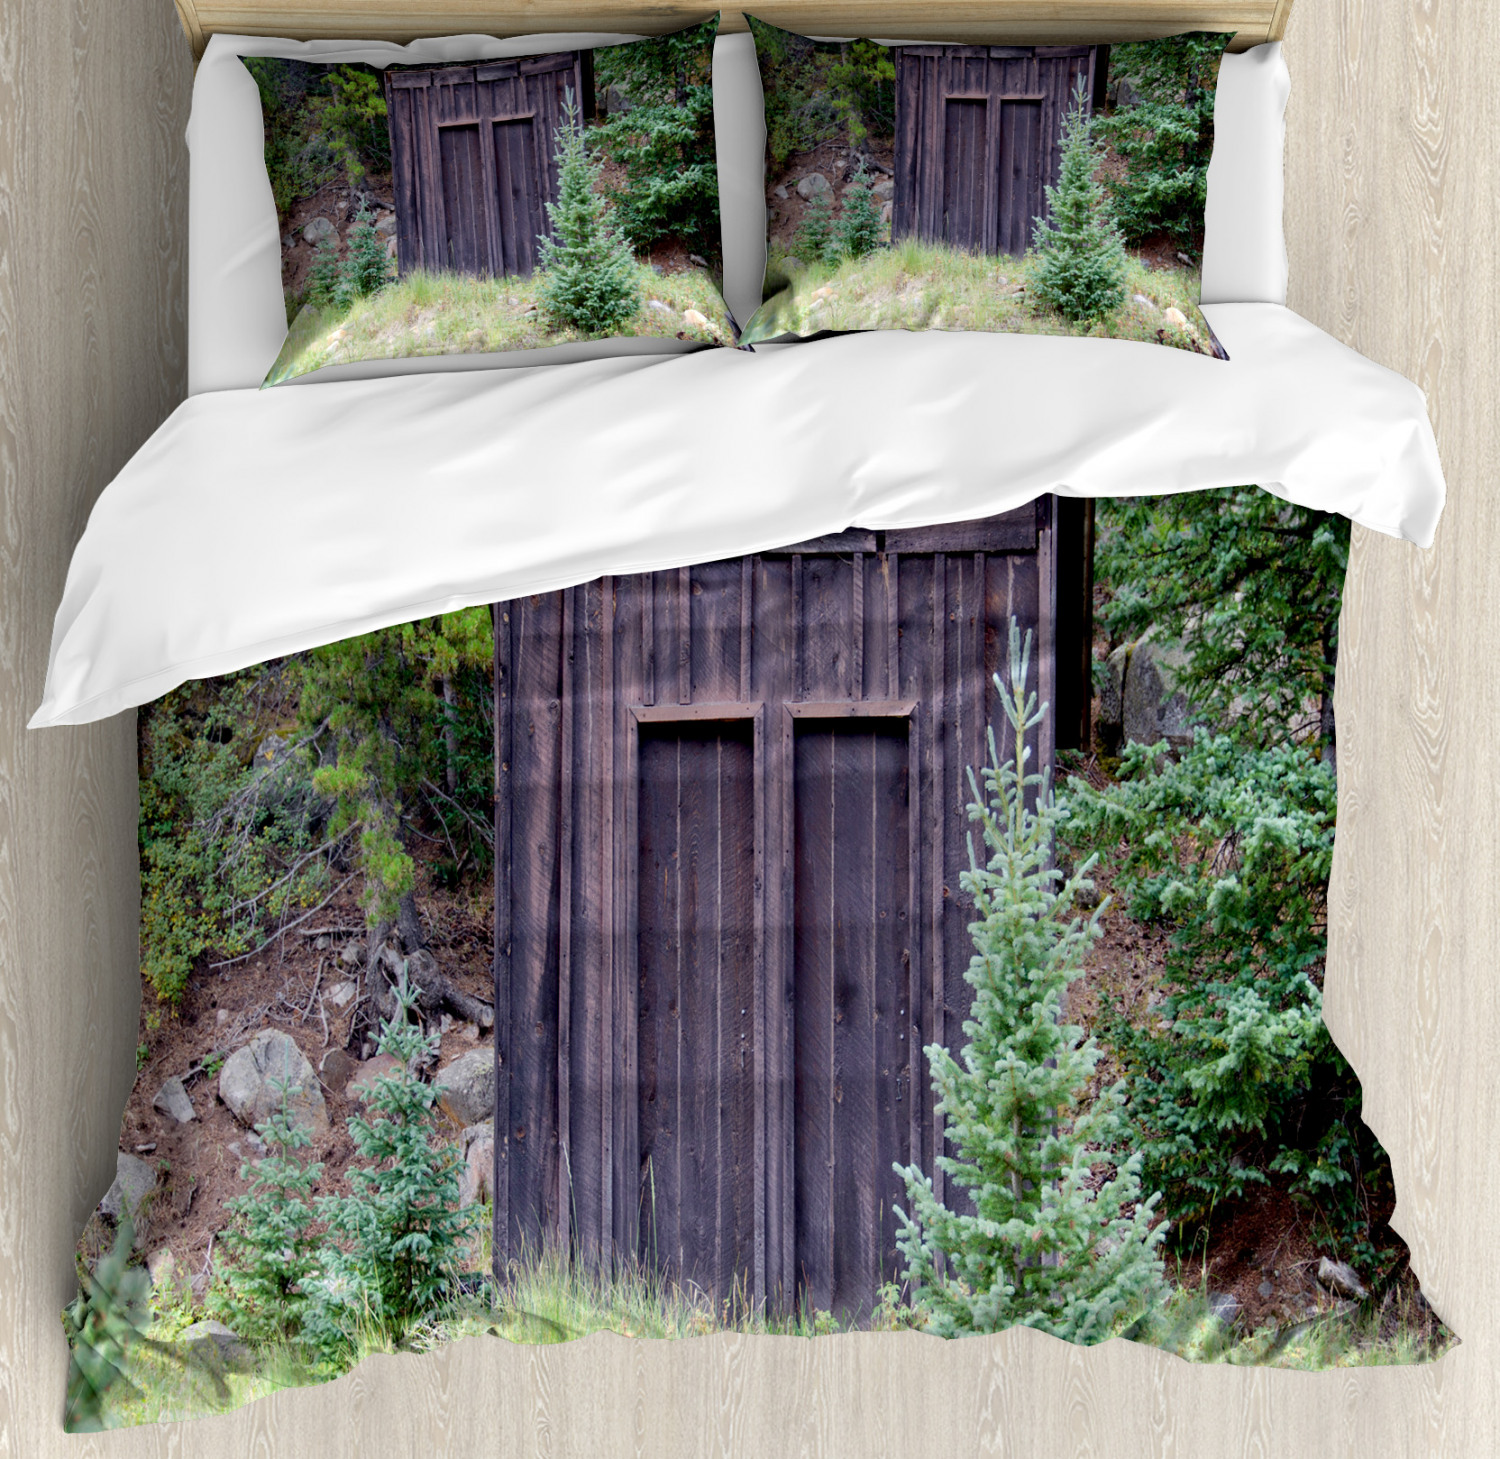 Outhouse Duvet Cover Set with Pillow Shams Cottage in Farm Forest Print